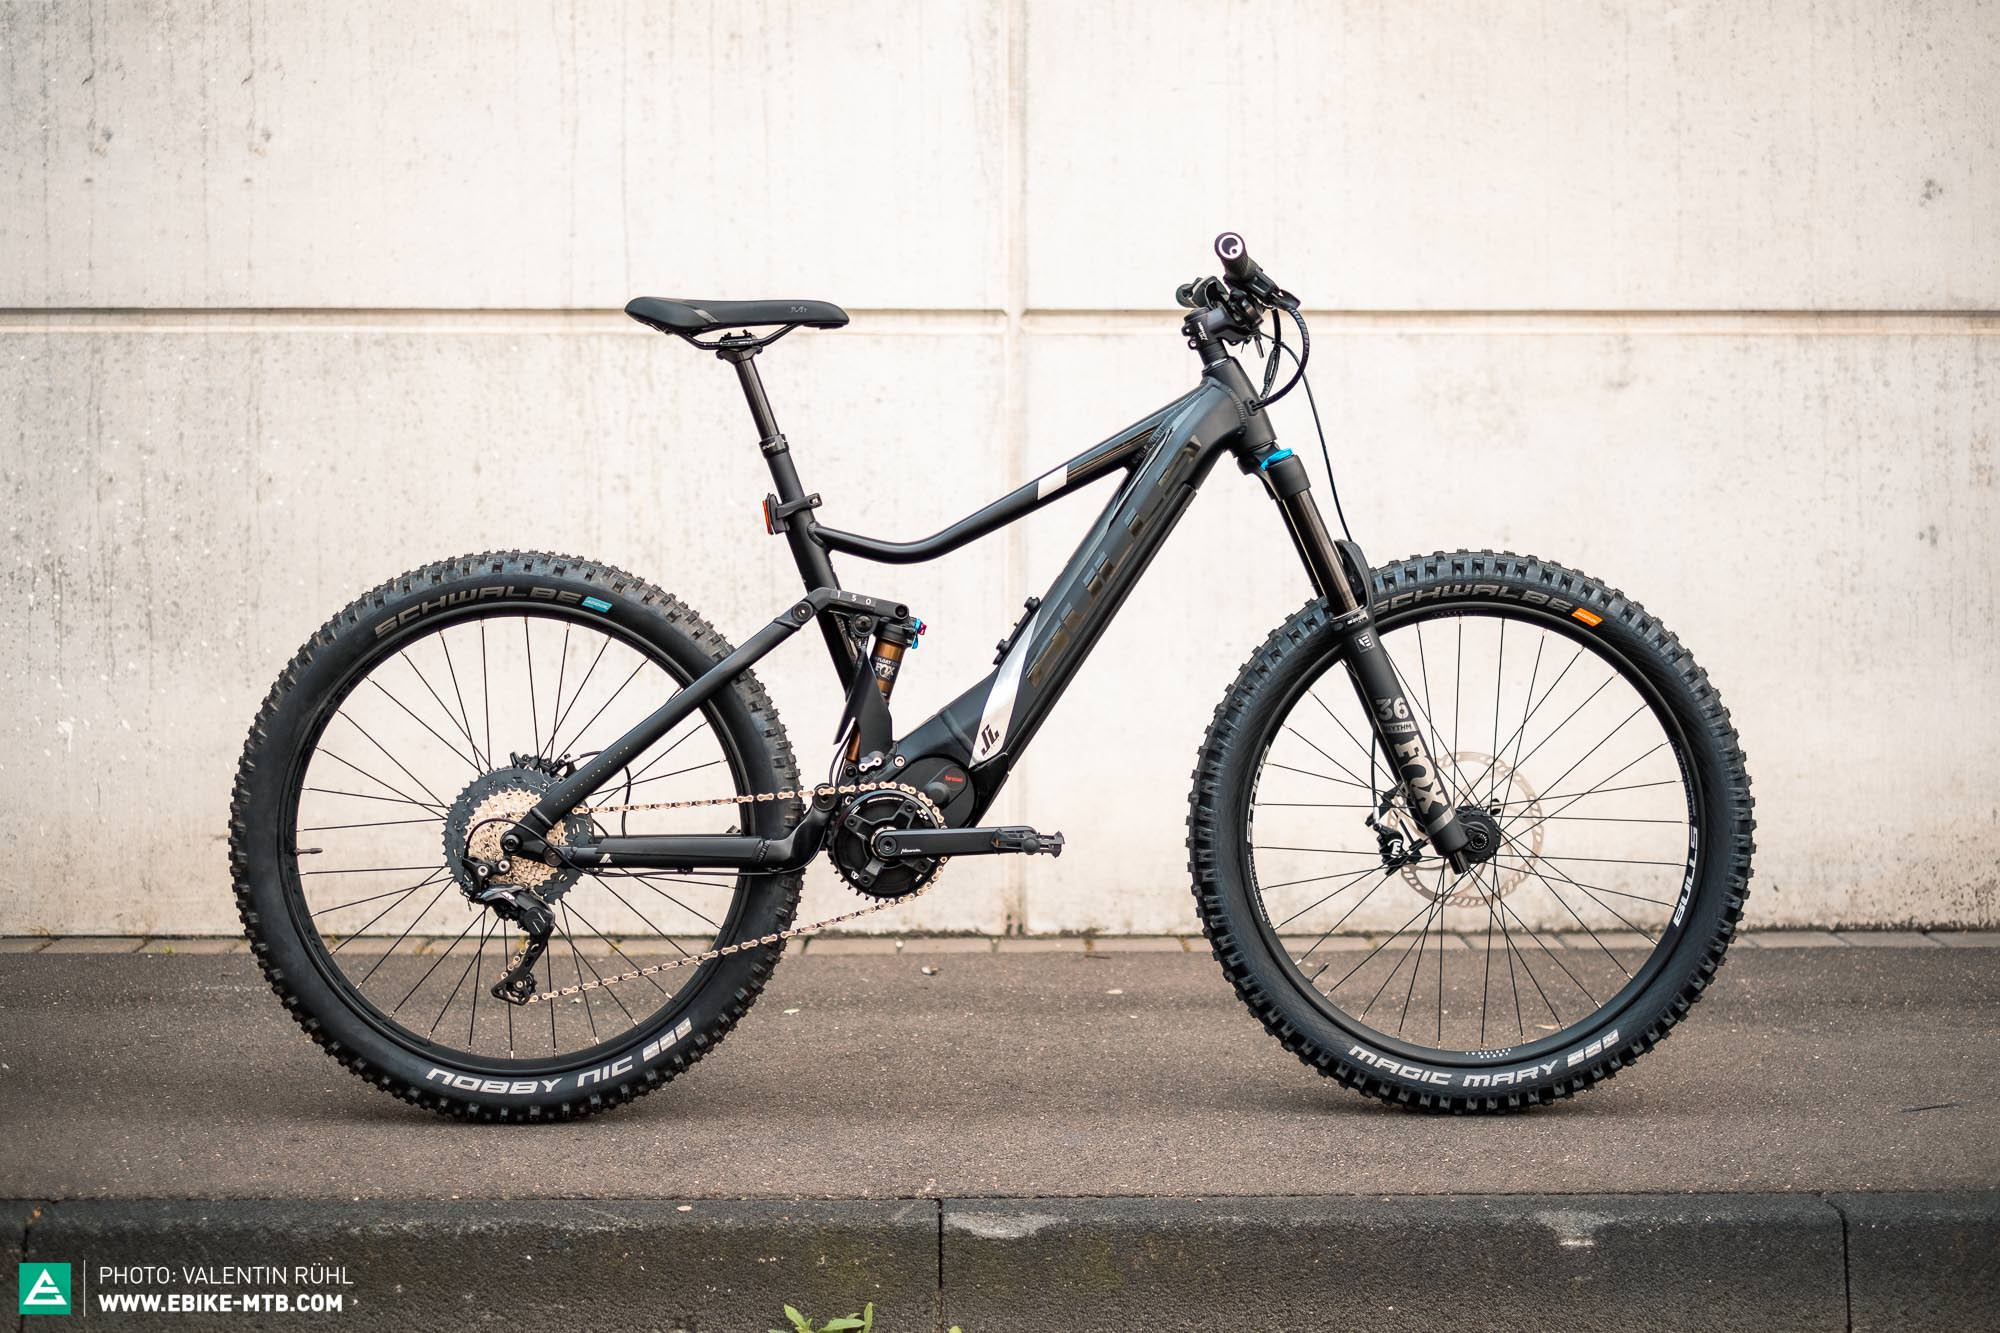 E Full In Bulls E Mtb News 2019 Lightweight 15 9 Kg Bike Brose With 750 Wh